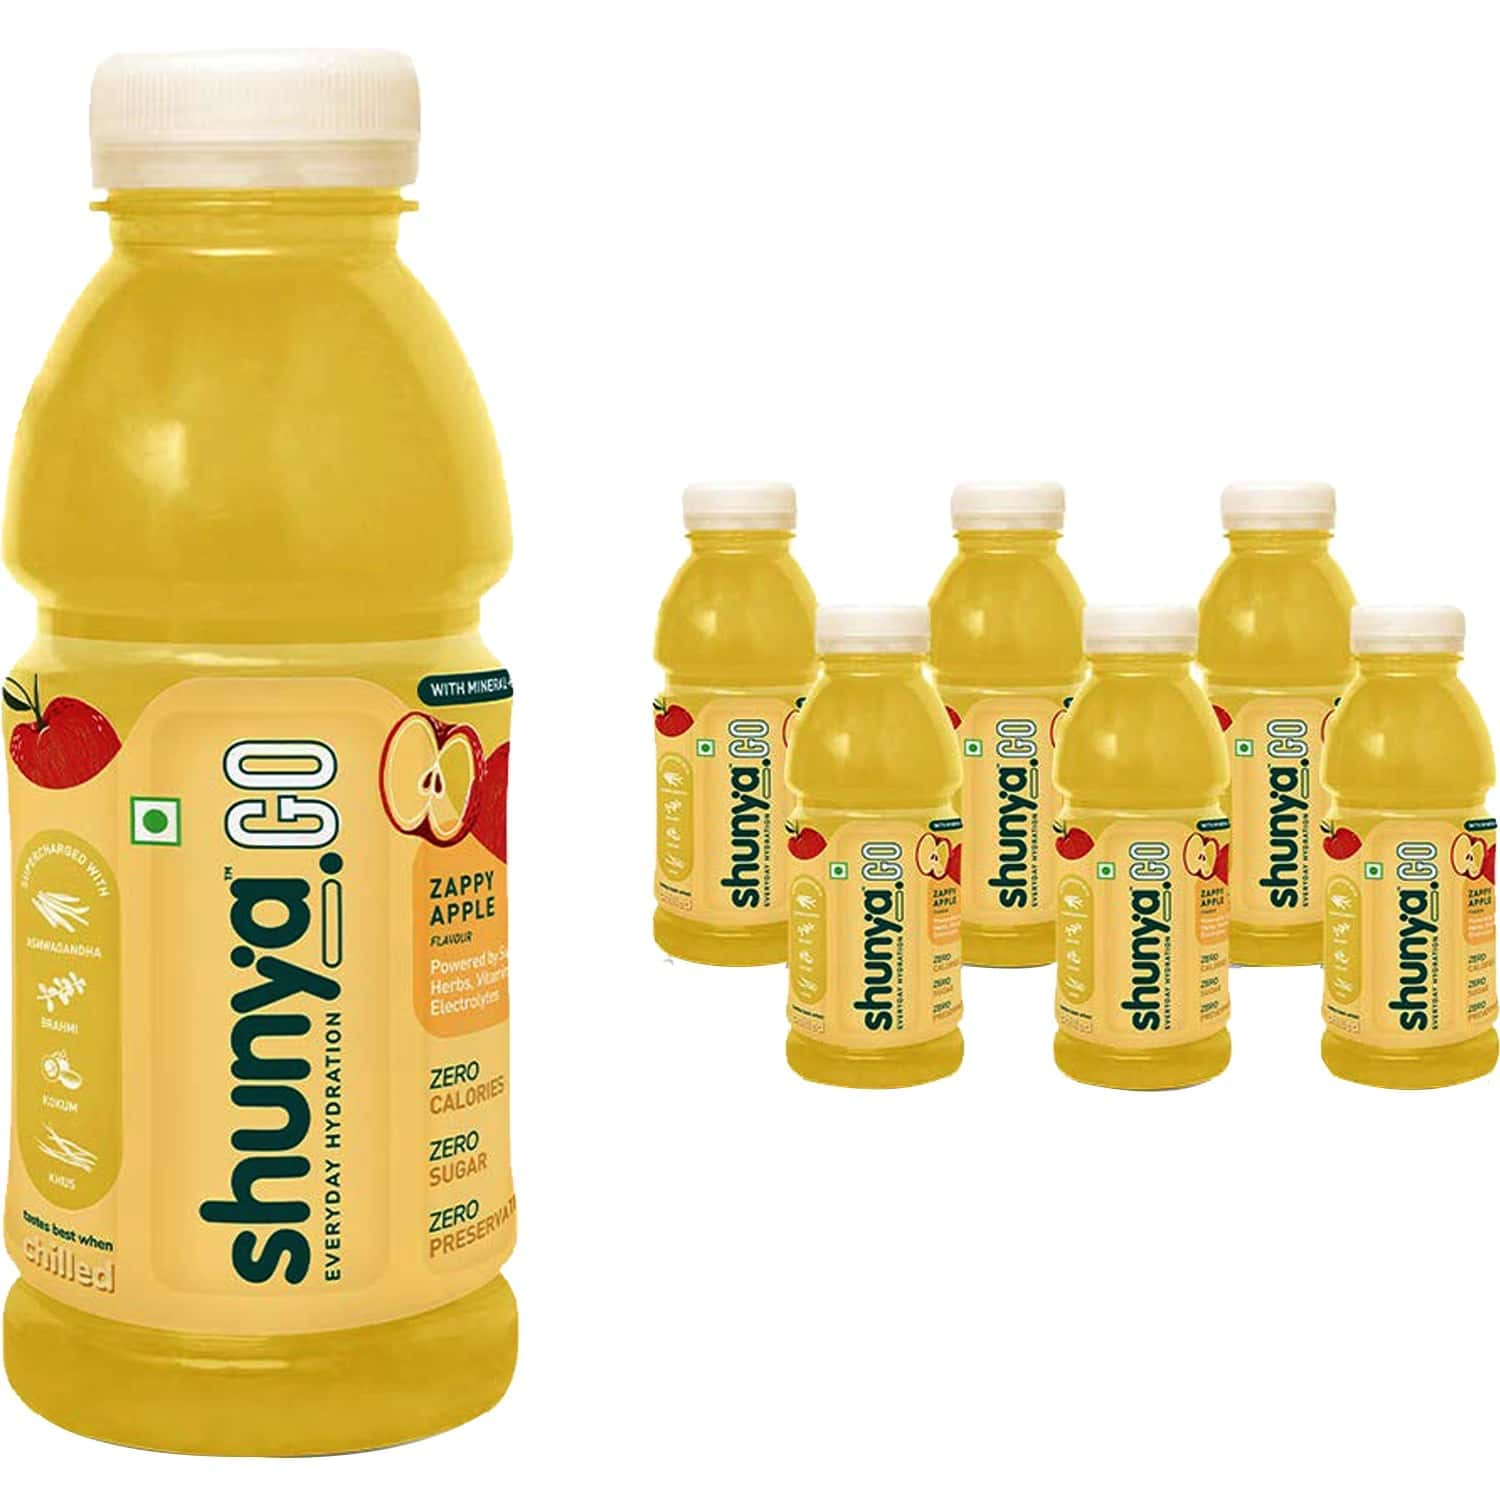 Shunya Go Zappy Apple   Active Hydration Drink With 0 Calories, 0 Sugar, 0 Preservatives Pack Of 6 (300ml X 6)